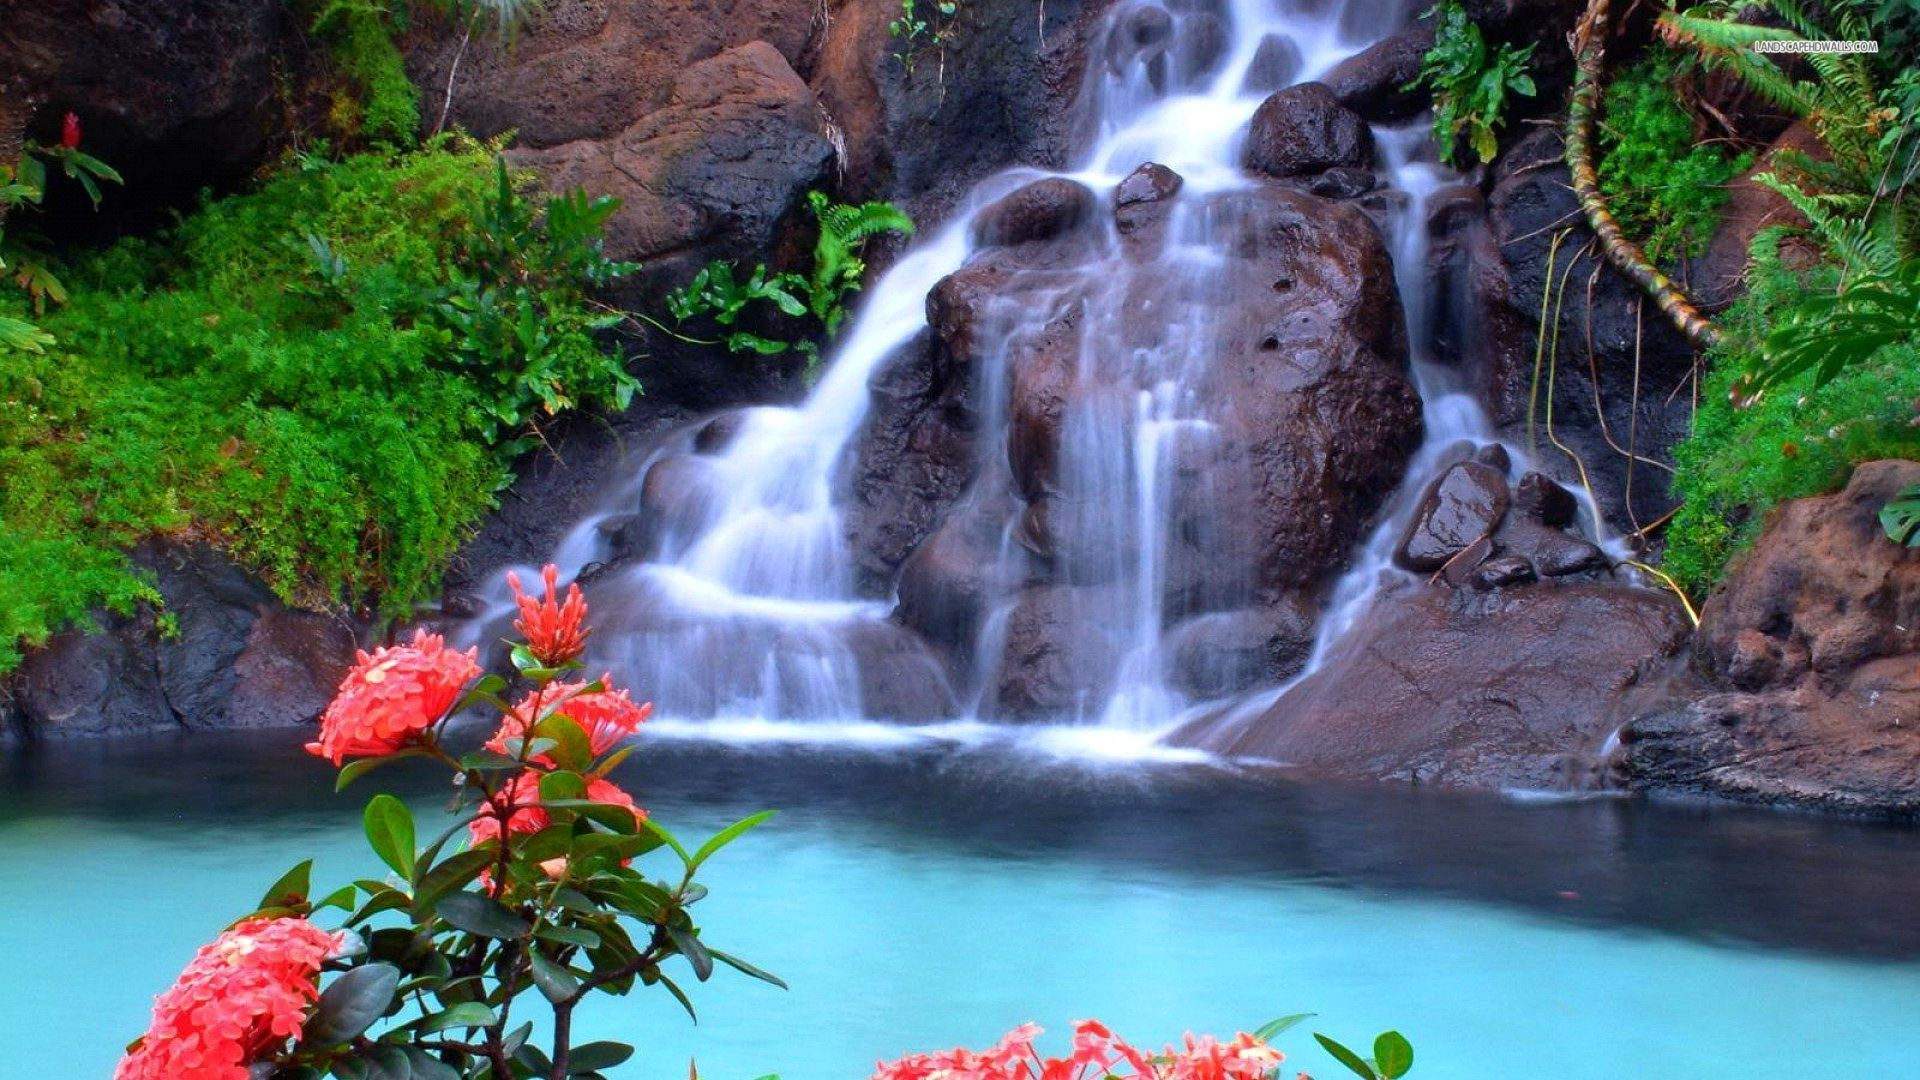 beautiful-waterfall-and-pink-flowers-free-hd-for-desktop - HD Wallpaper